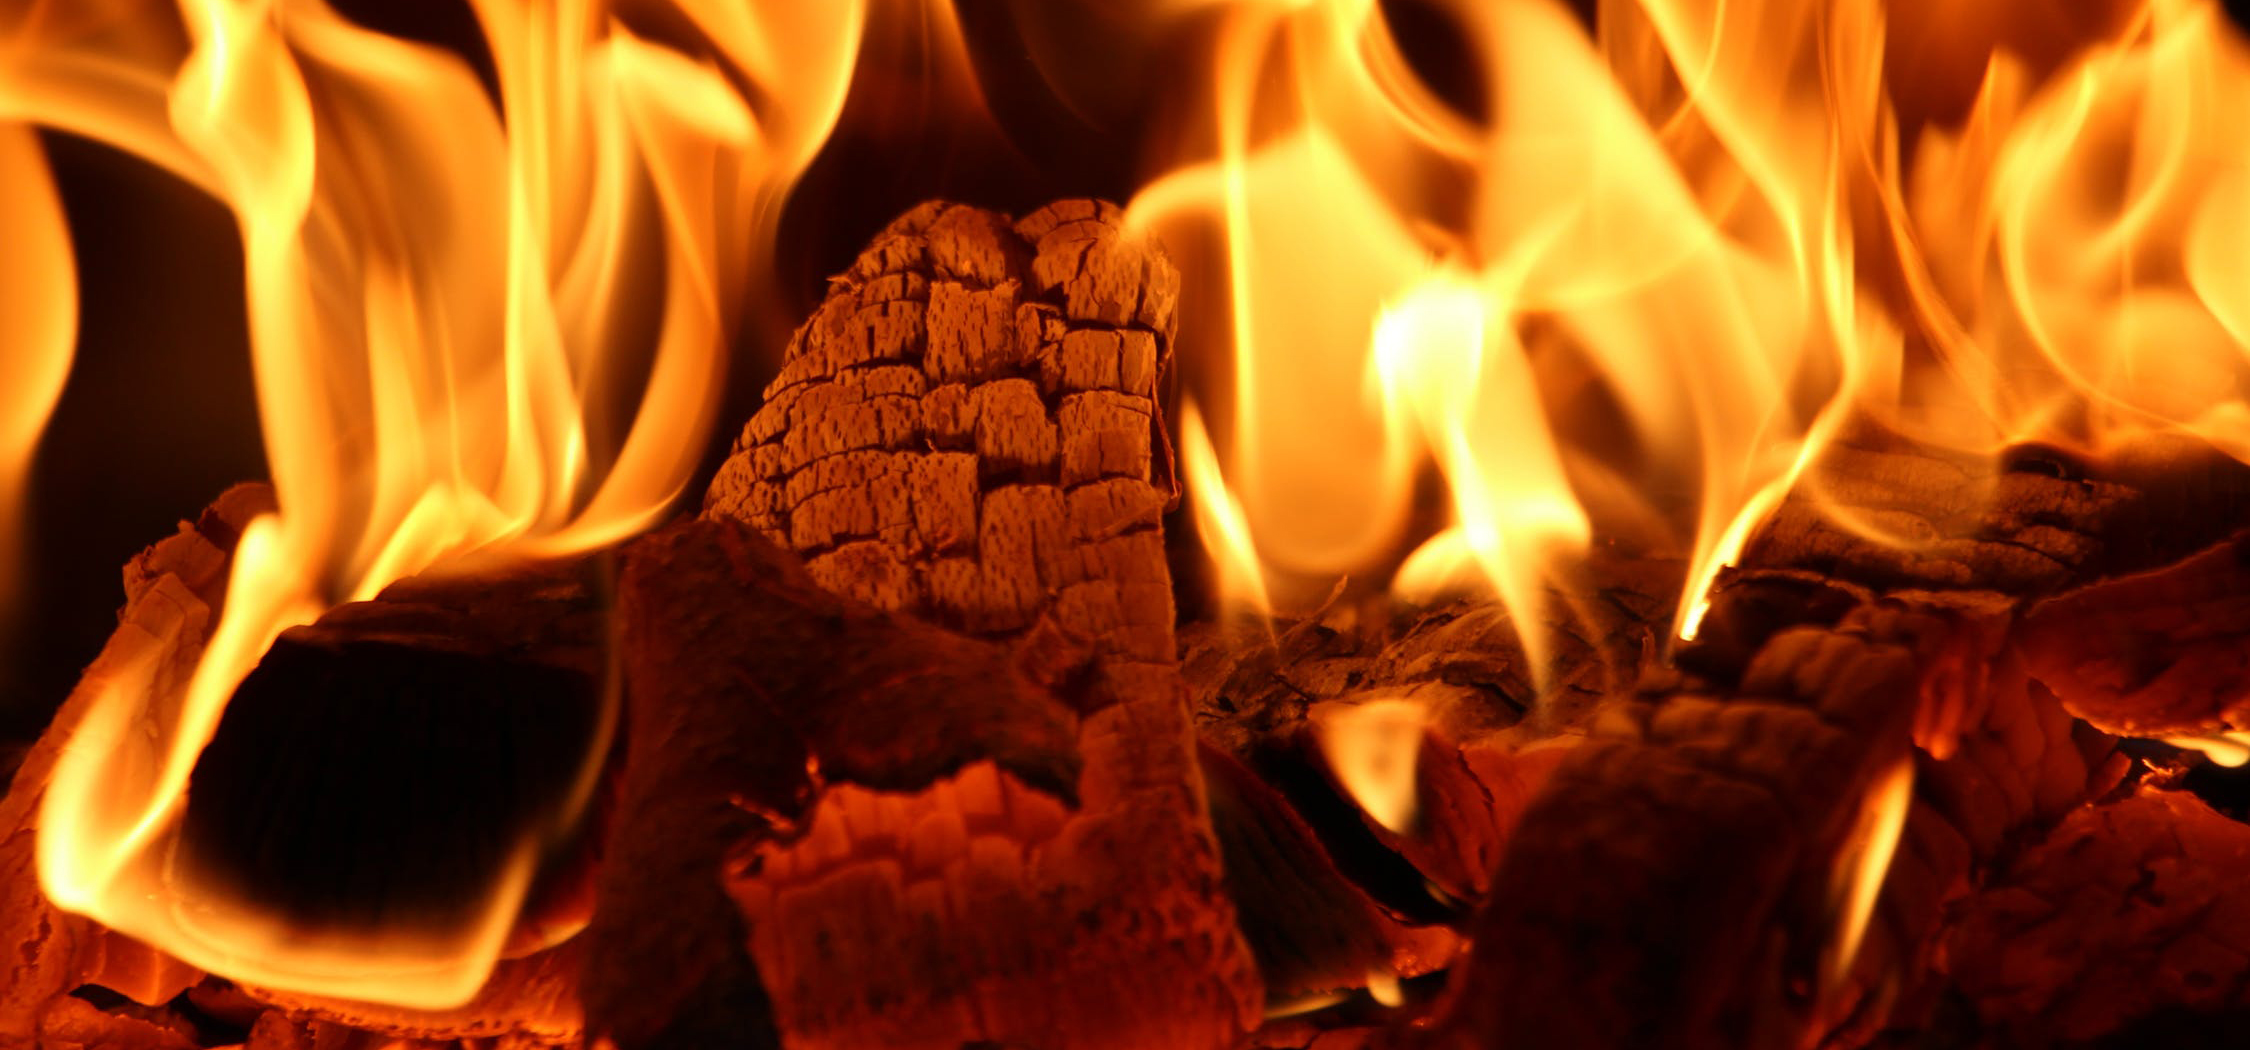 choosing-a-gas-fireplace-for-your-home-6.jpeg